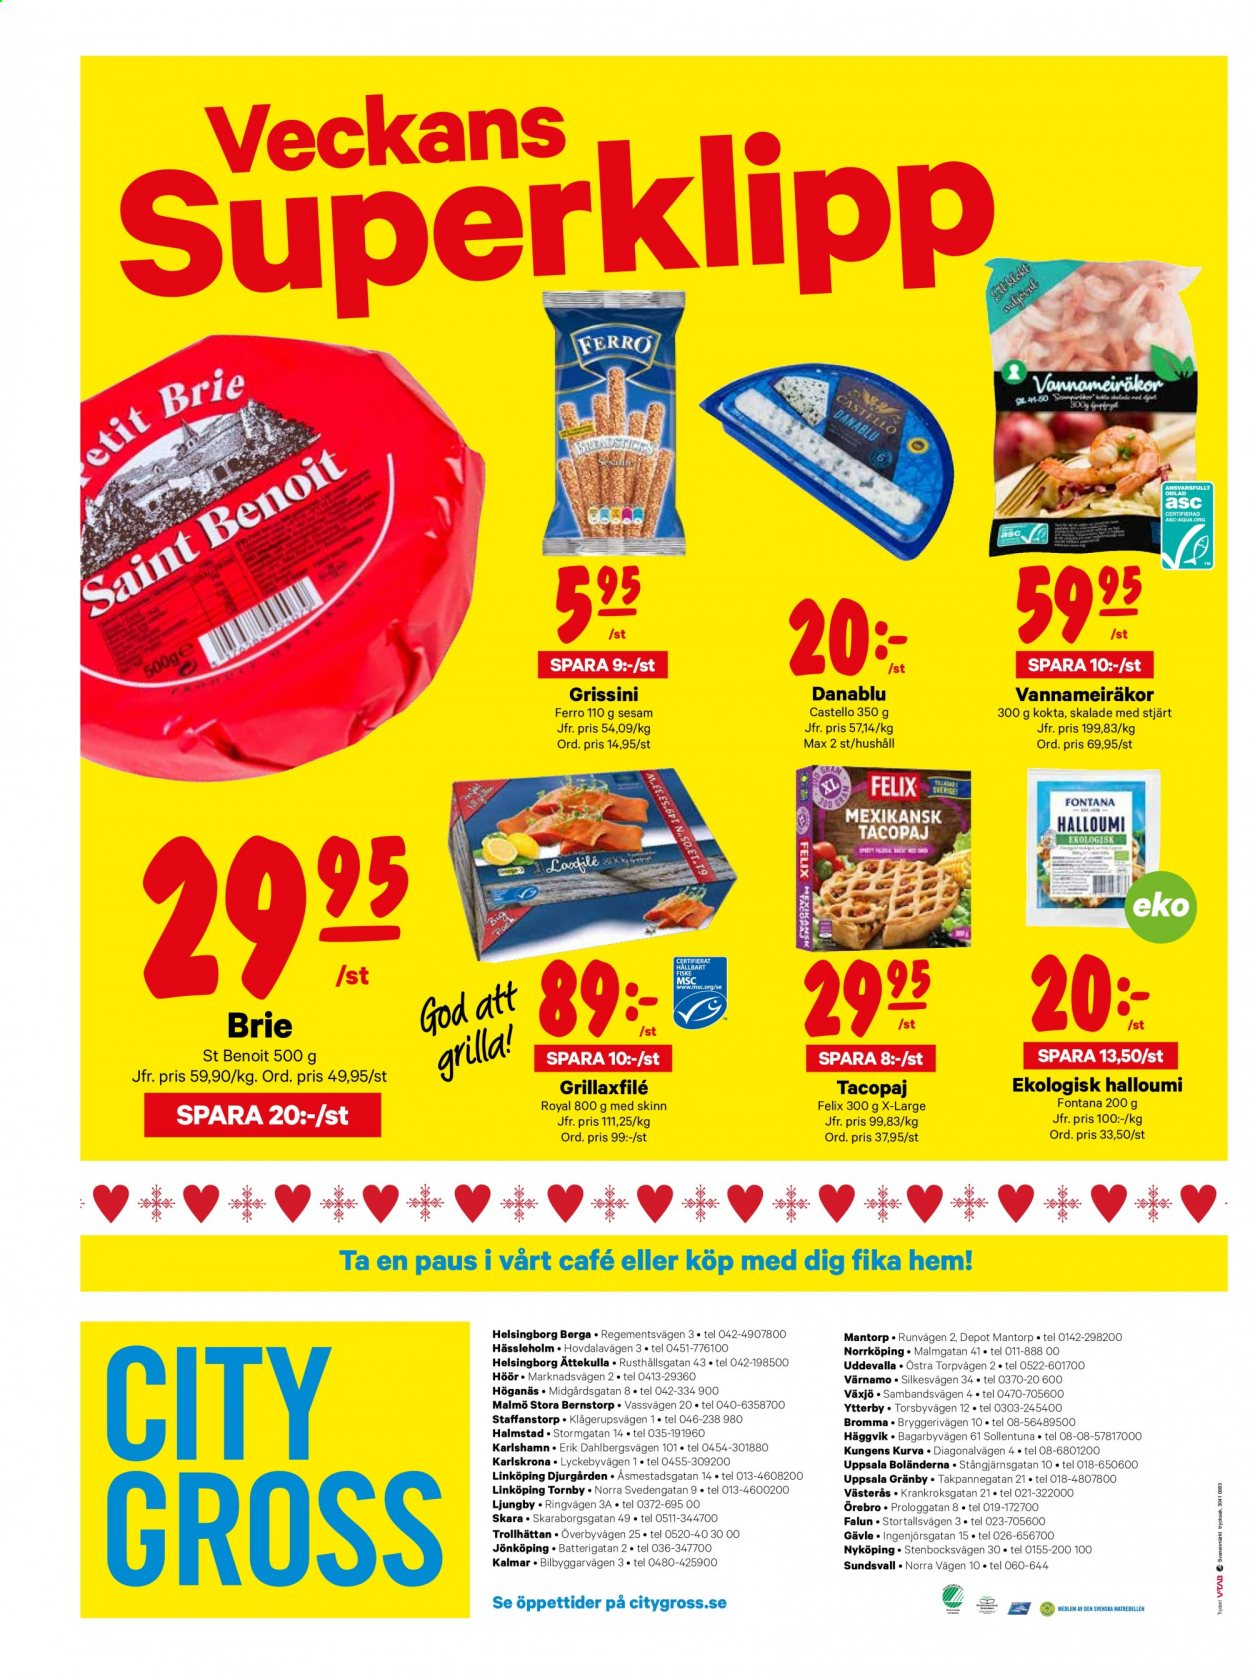 City Gross reklamblad - 29/12 2020 - 3/1 2021. Sida 16.